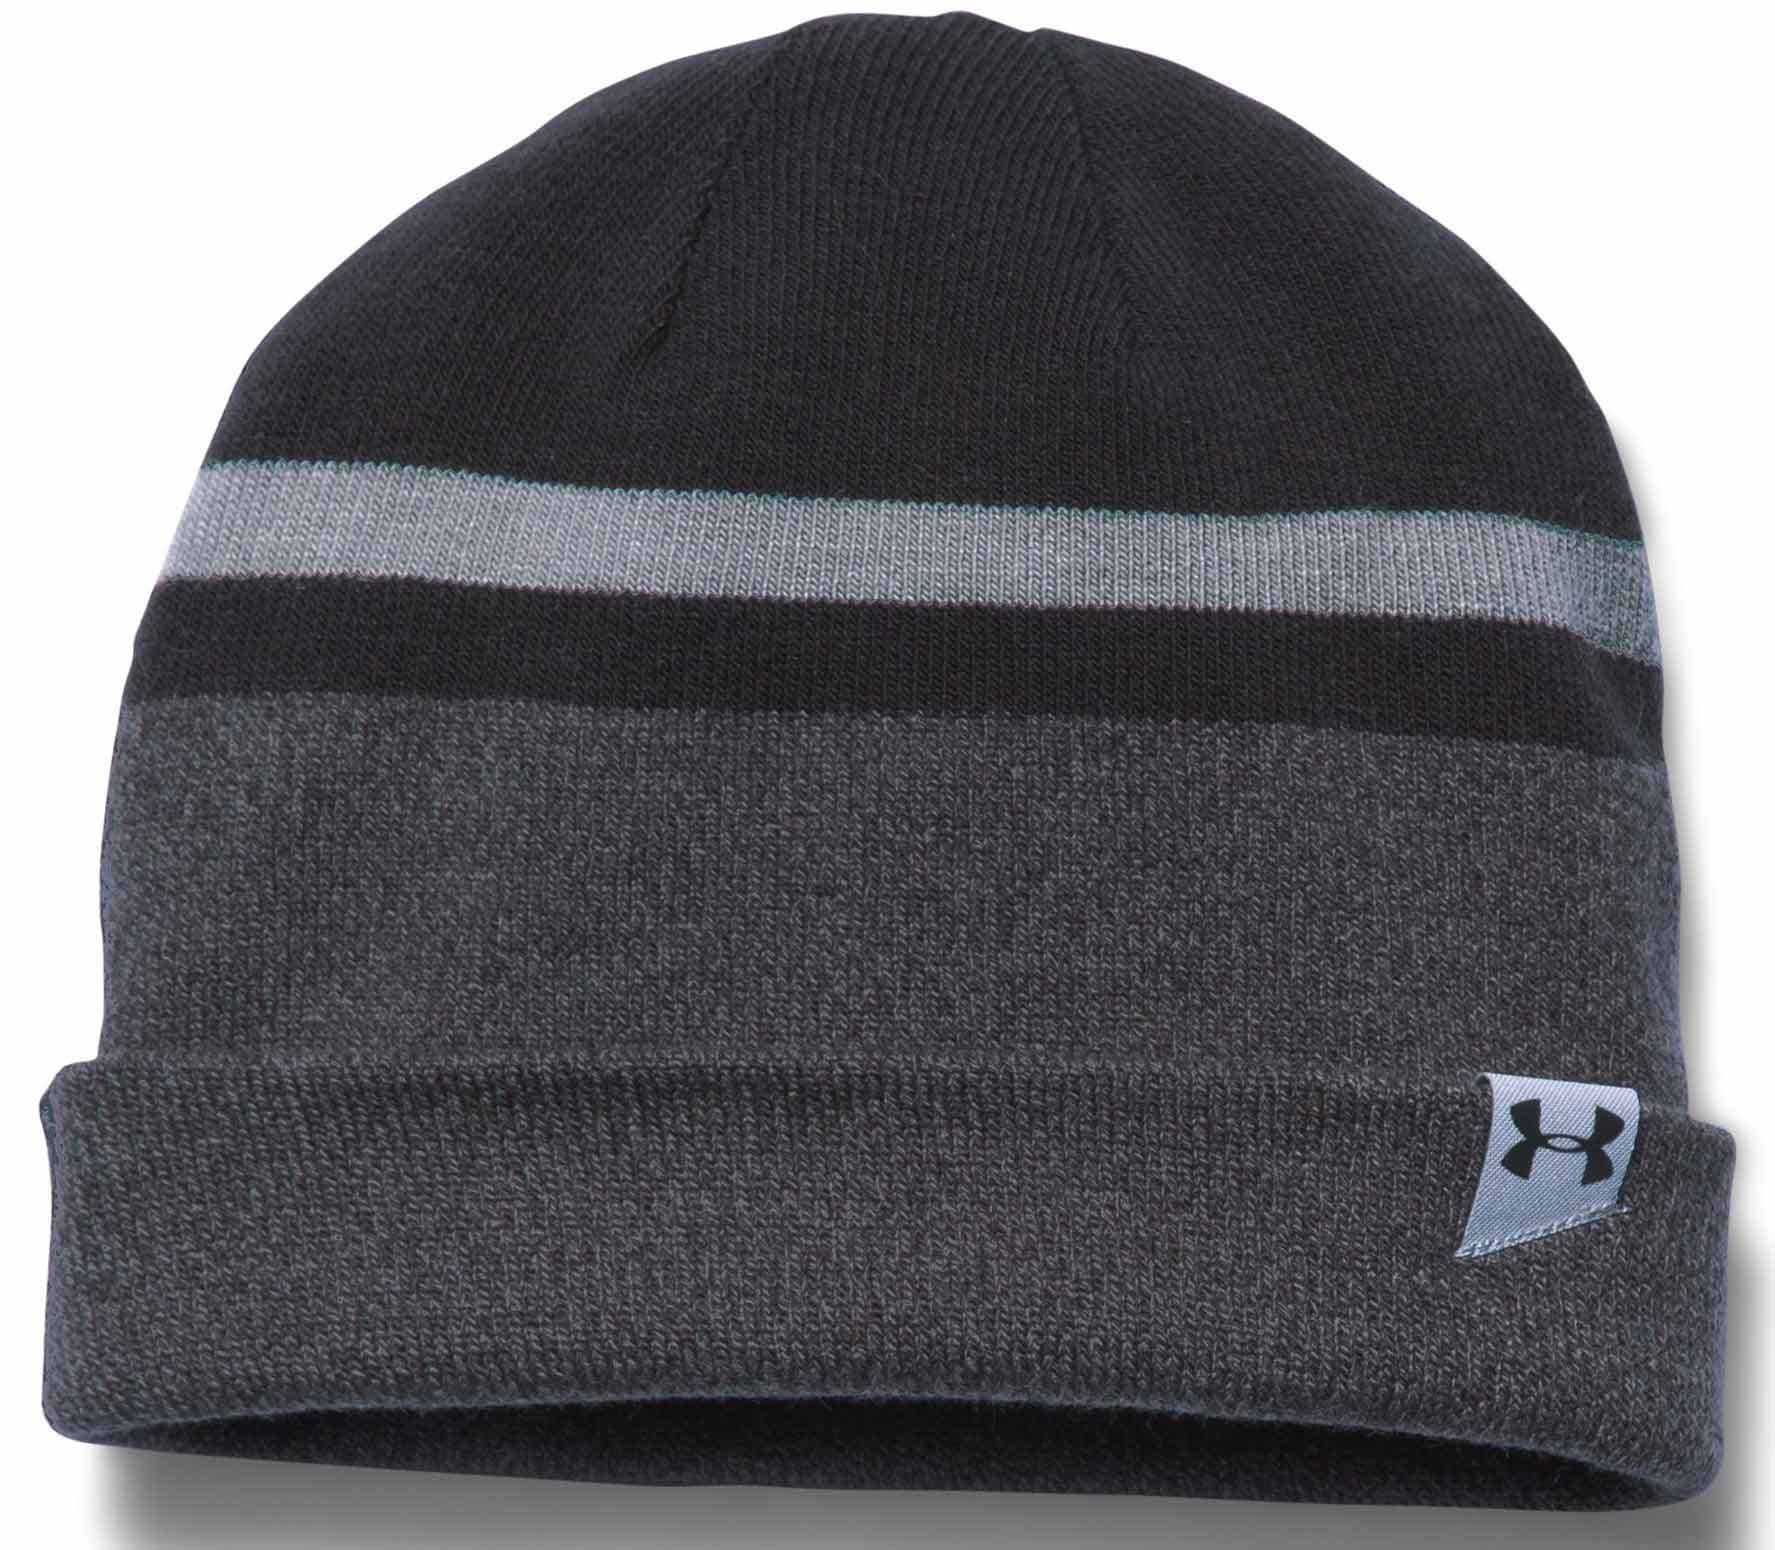 d04fdc2352ce5 Under Armour - 4 in 1 beanie 2.0 men s training Hat (grey black ...